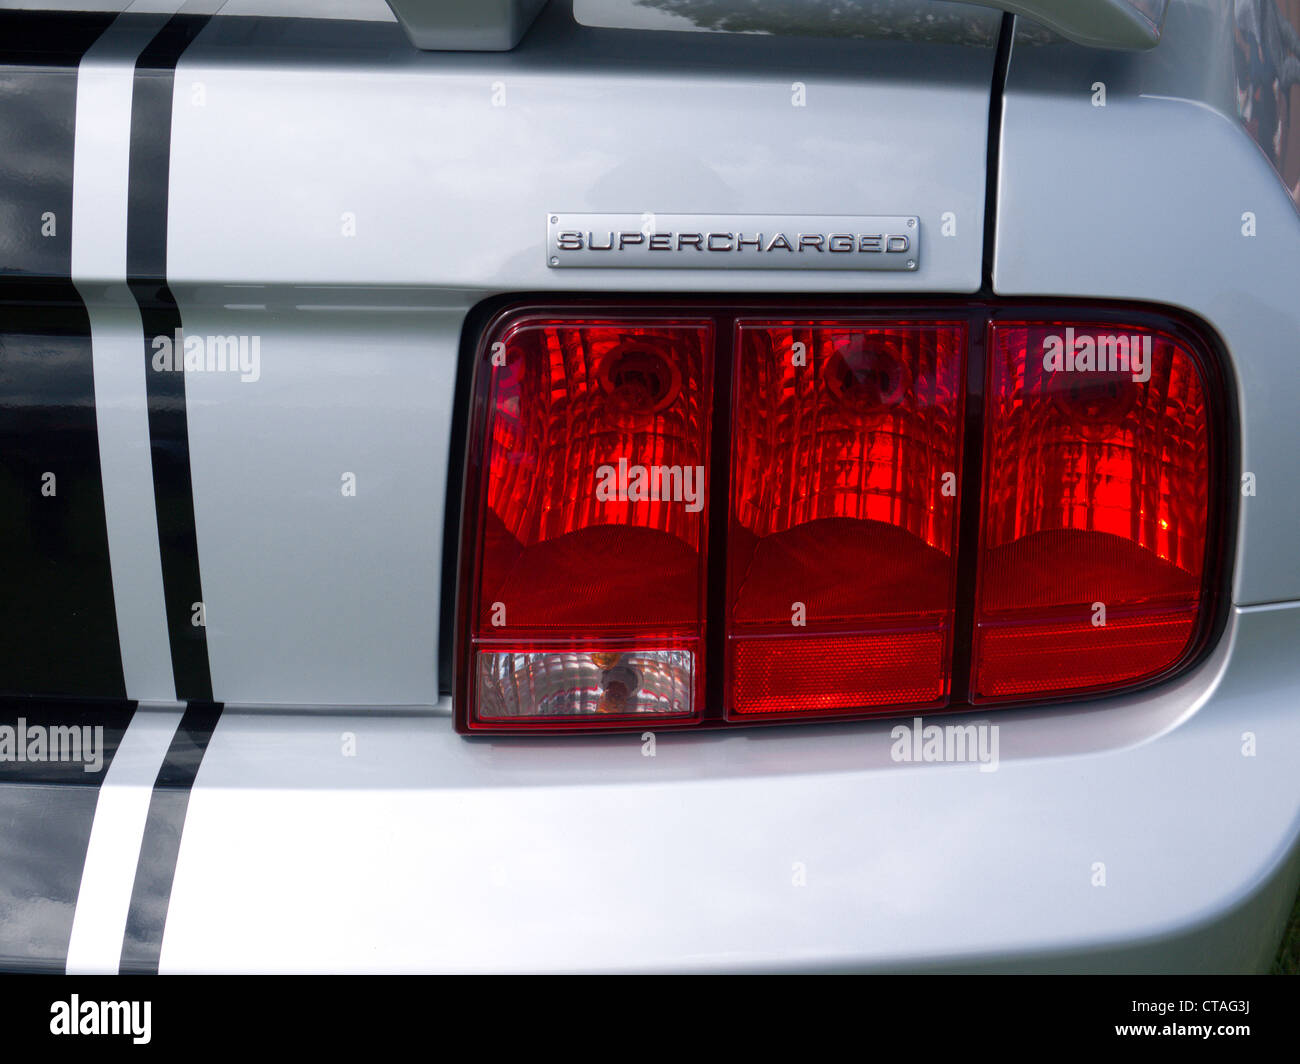 Late model, supercharged Ford Mustang tail lights and badge - Stock Image